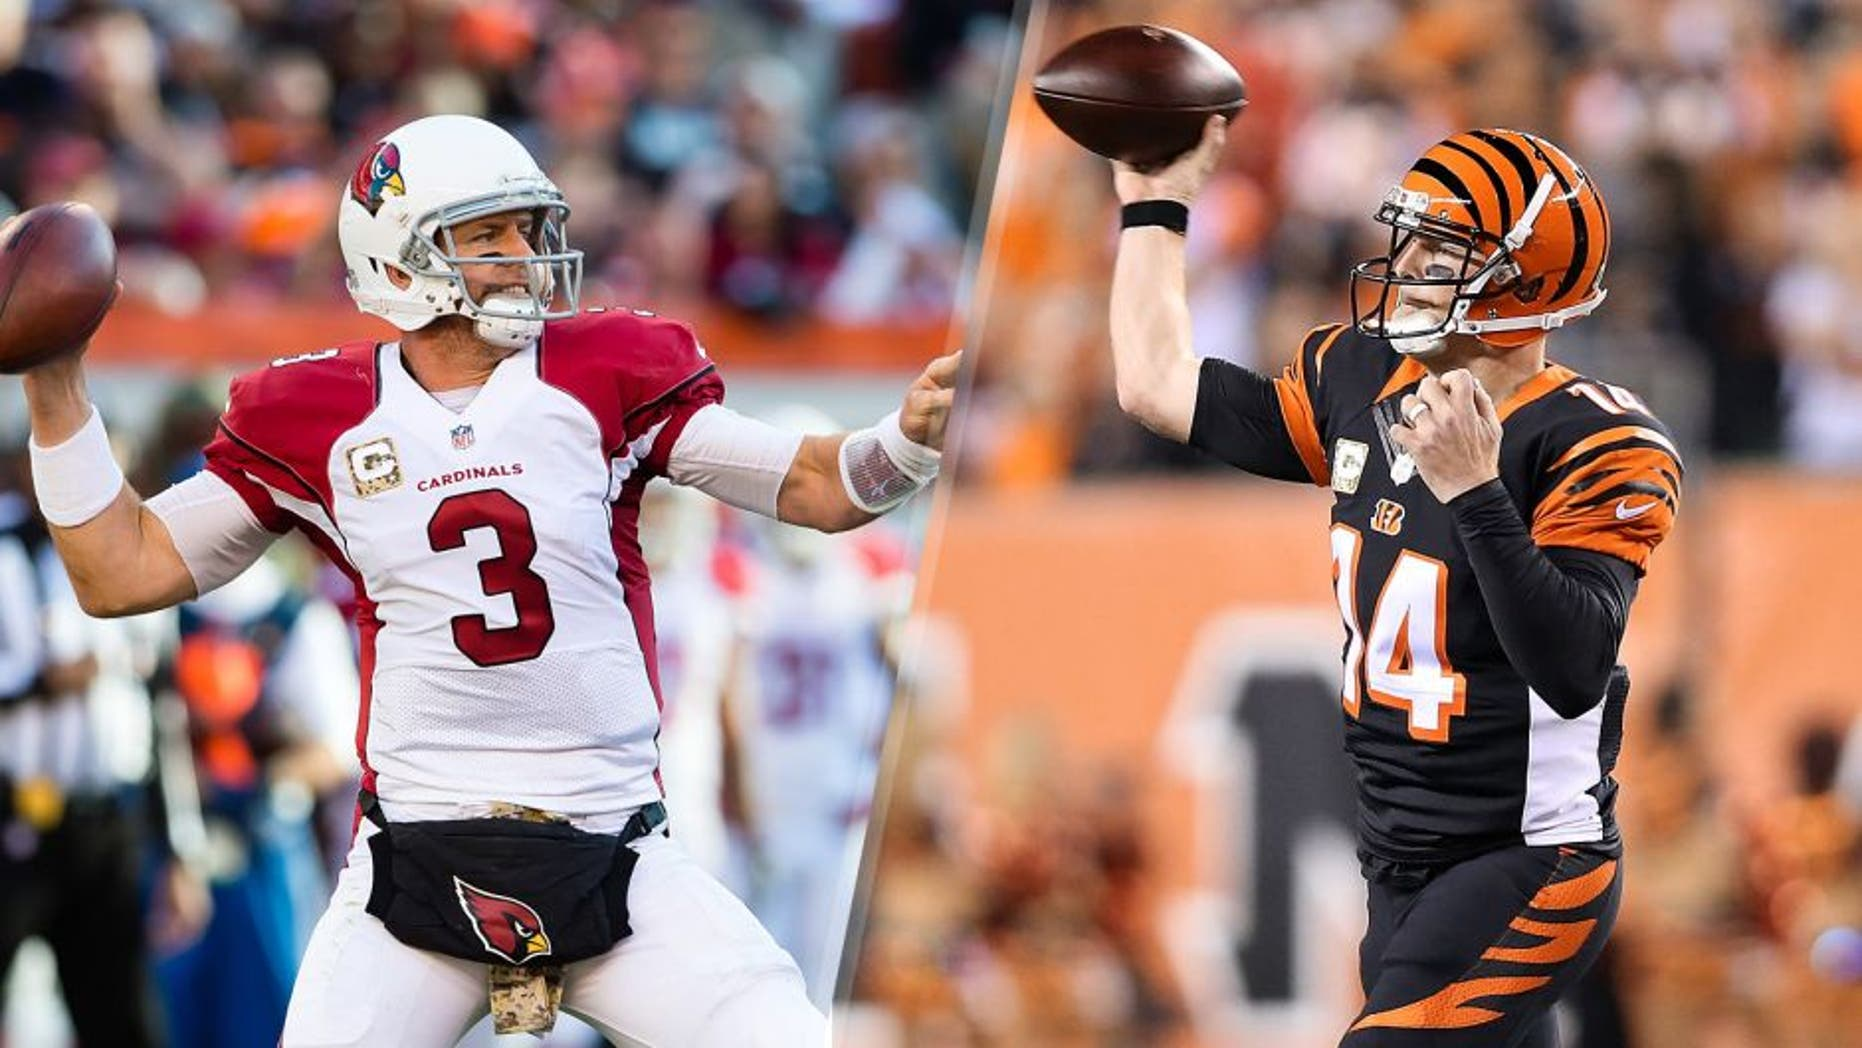 Quarterback Carson Palmer #3 of the Arizona Cardinals passes during the second half against the Cleveland Browns at FirstEnergy Stadium on November 1, 2015 in Cleveland, Ohio. The Cardinals defeated the Browns 34-20. (Photo by Jason Miller/Getty Images) Andy Dalton #14 of the Cincinnati Bengals throws a pass during the first quarter of the game against the Cleveland Browns at Paul Brown Stadium on November 5, 2015 in Cincinnati, Ohio. (Photo by Andy Lyons/Getty Images)